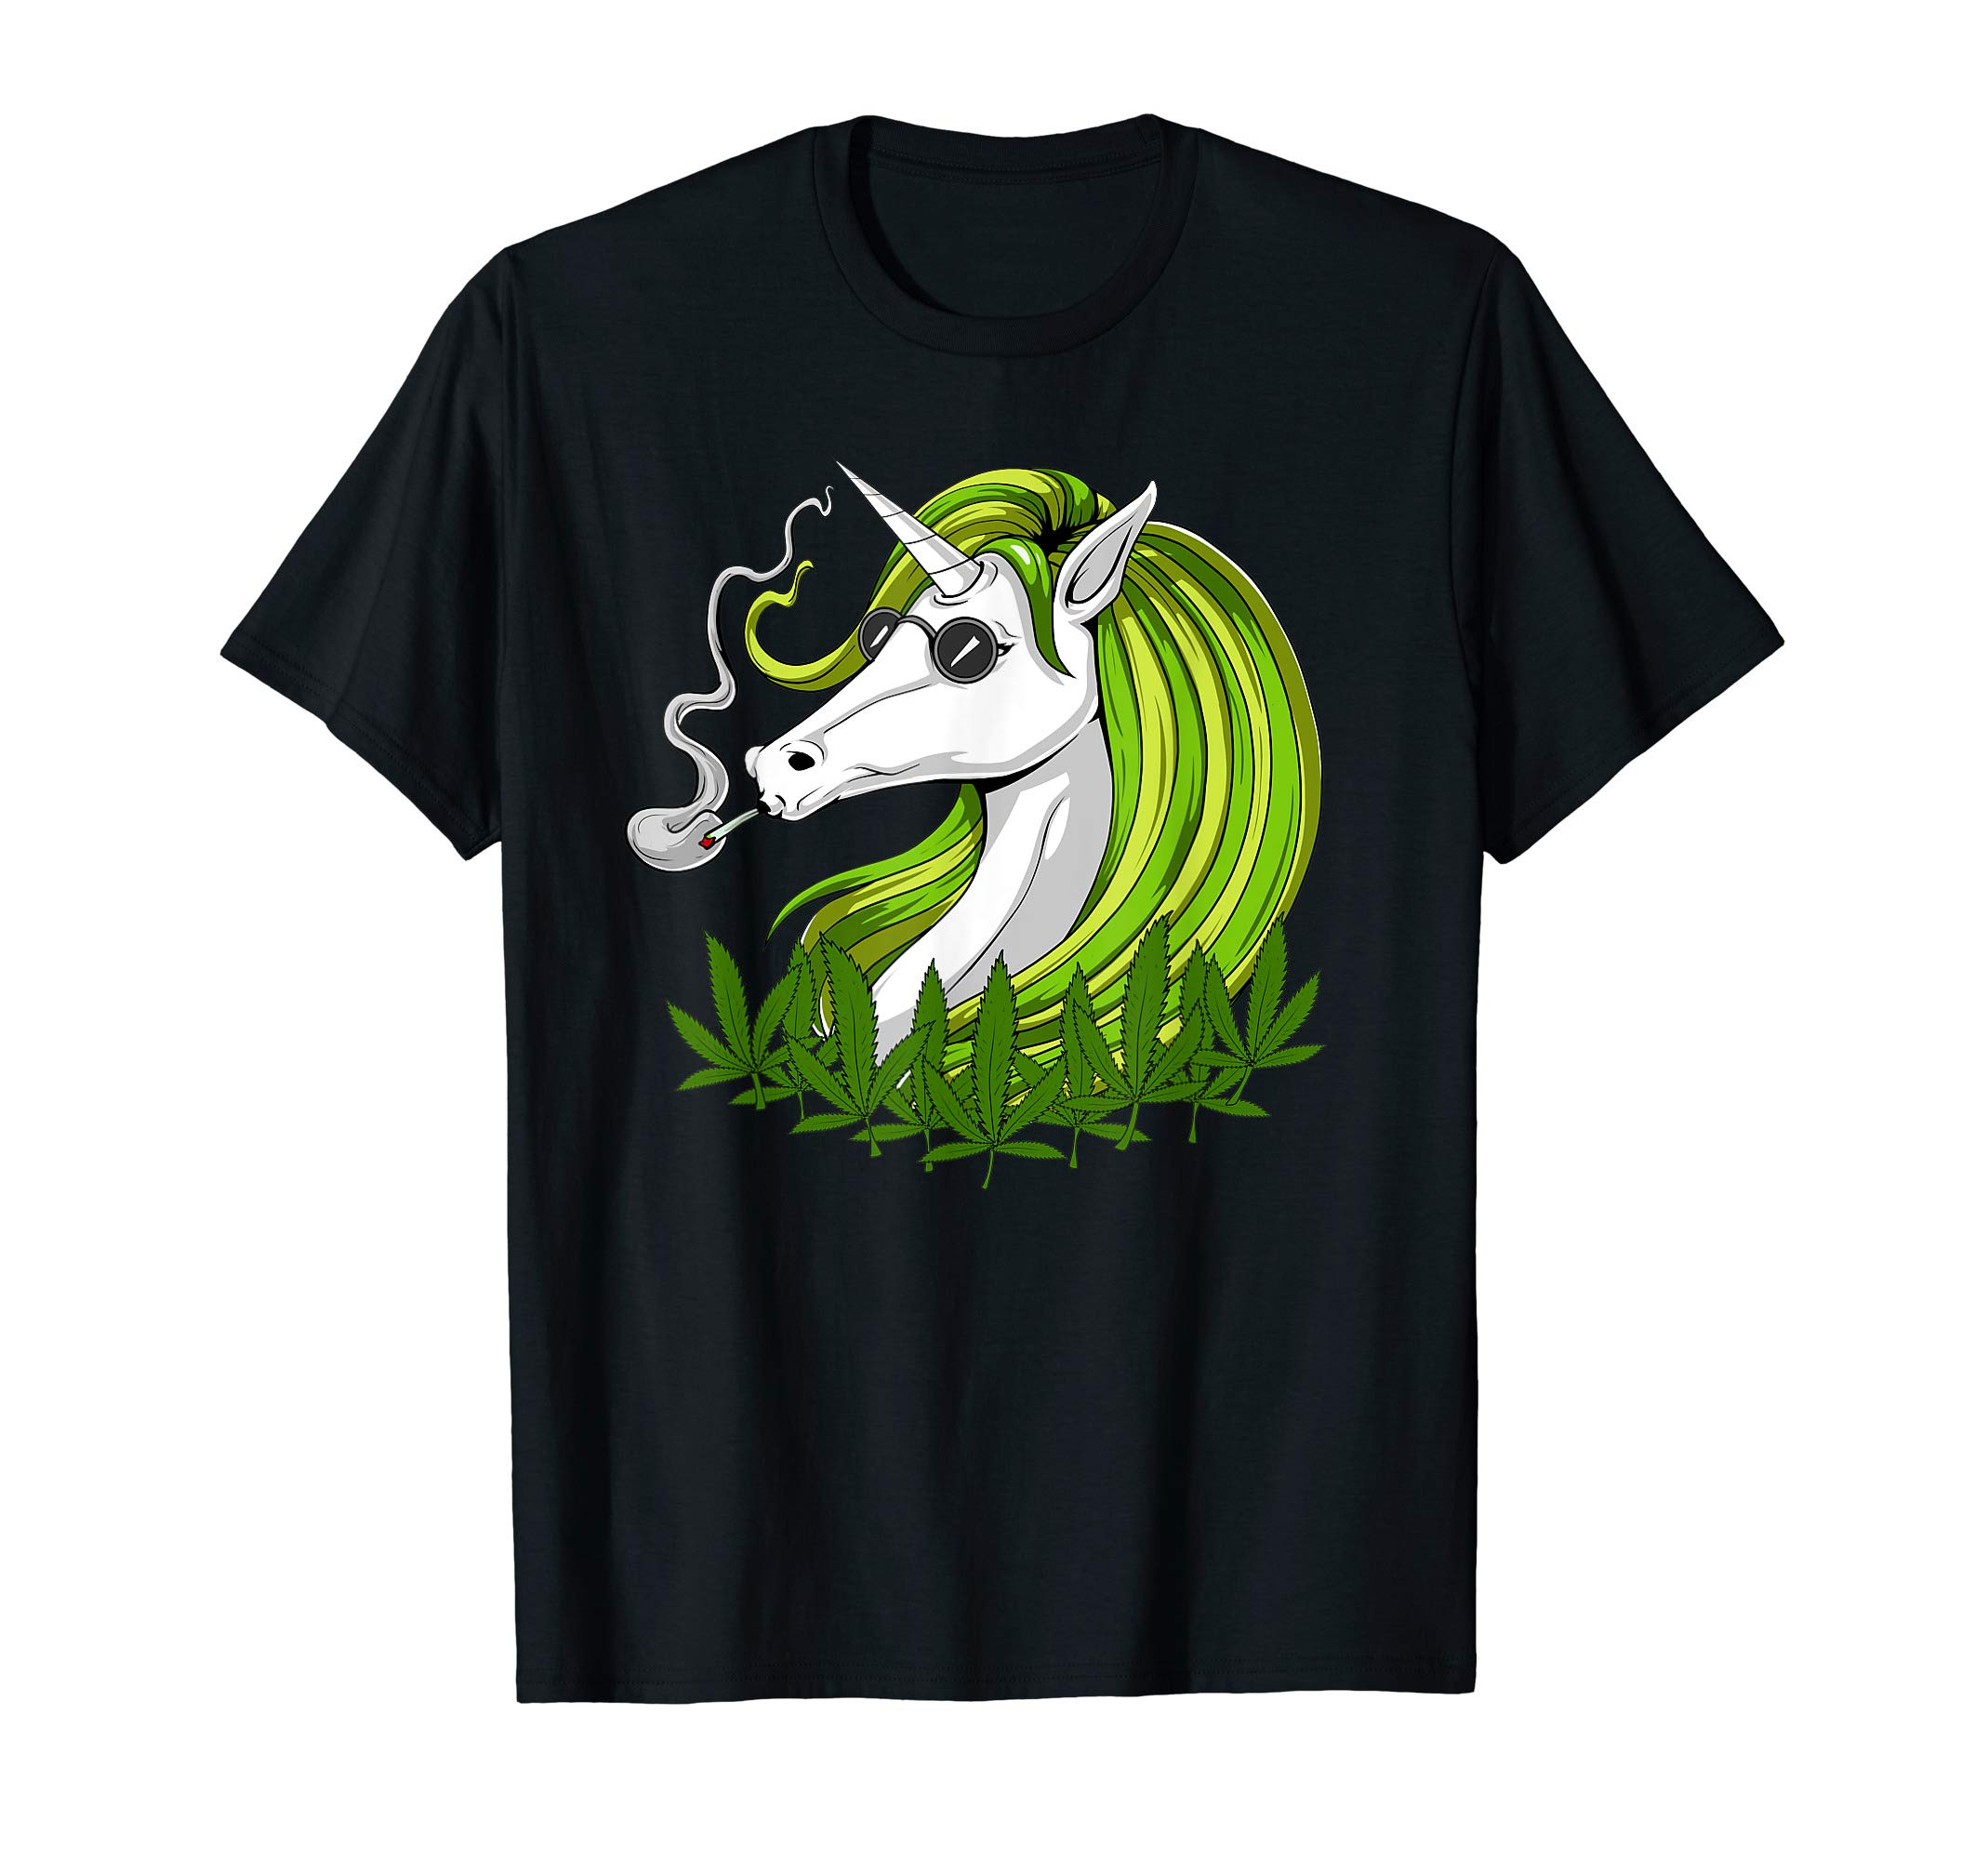 Unicorn Hippie Smoking Weed Cannabis Leaves Marijuana Women T-Shirt